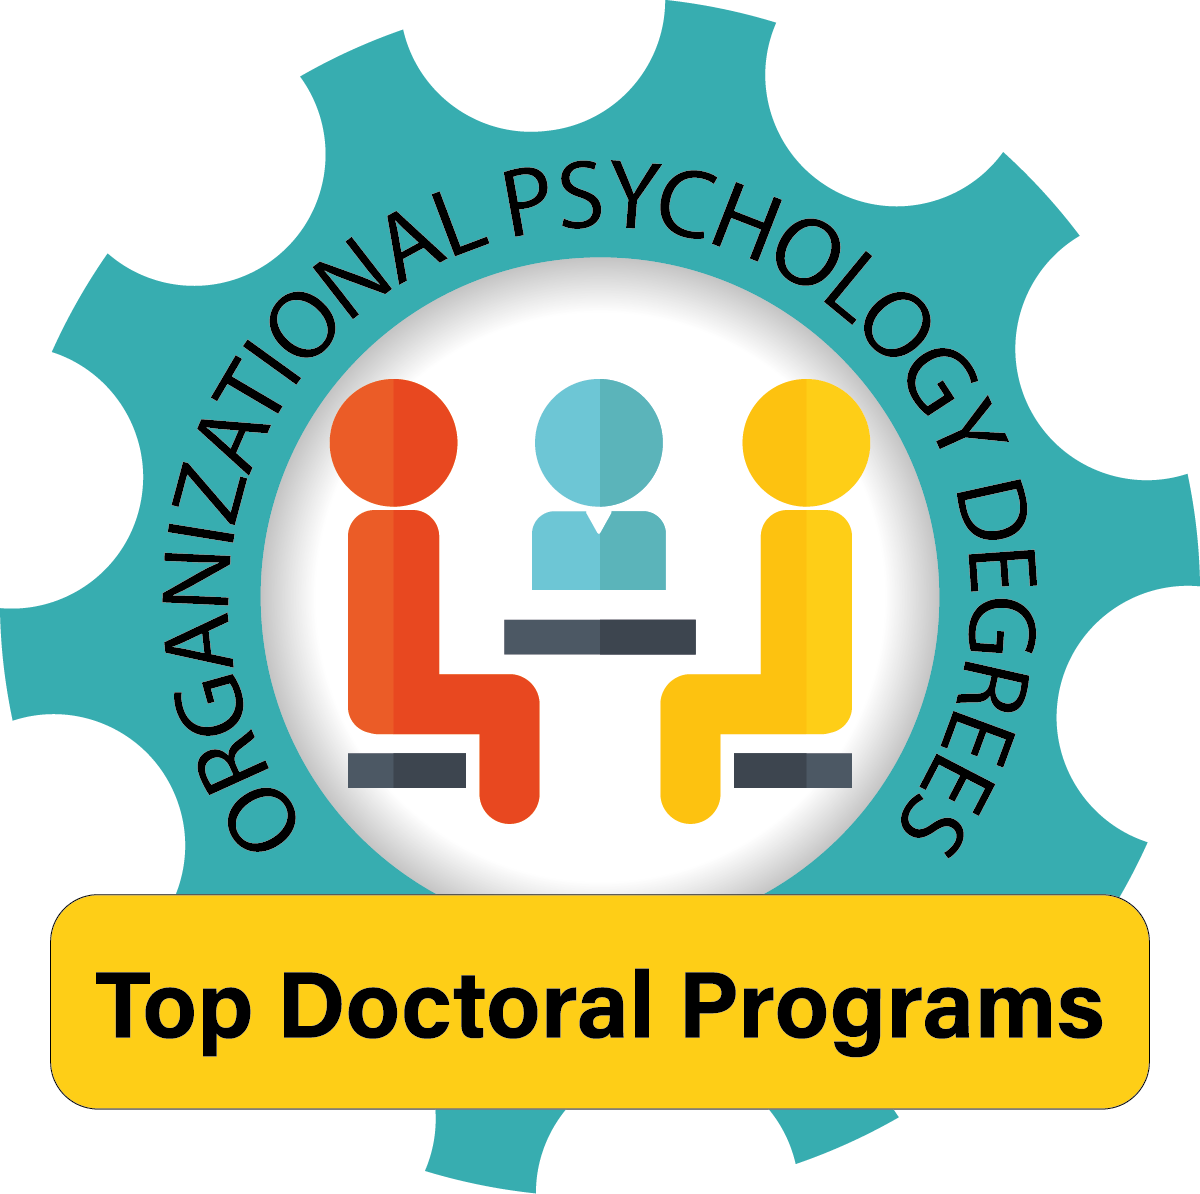 Best Degrees 2020.Top 10 Ph D In I O Psychology 2020